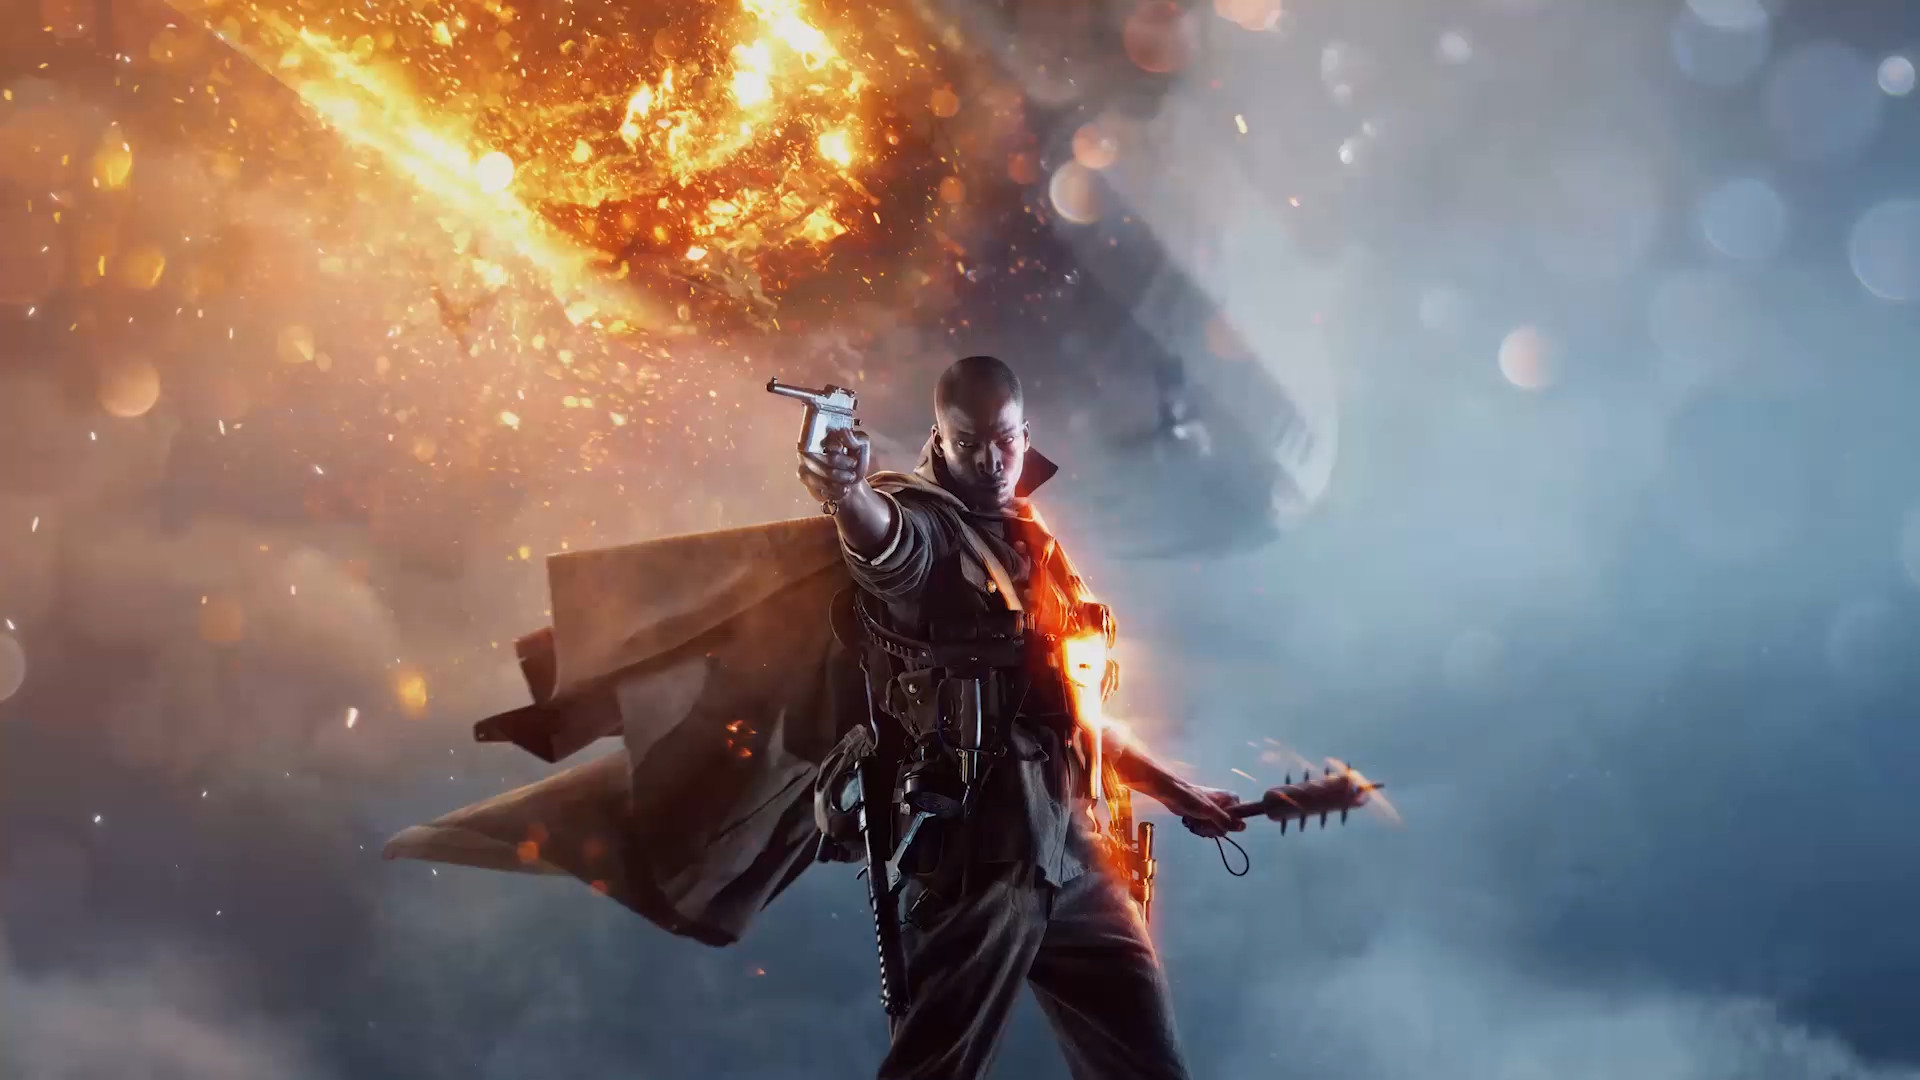 rendition1.img  5 Battlefield 1 Campaign Showcased In Incredible New Trailer